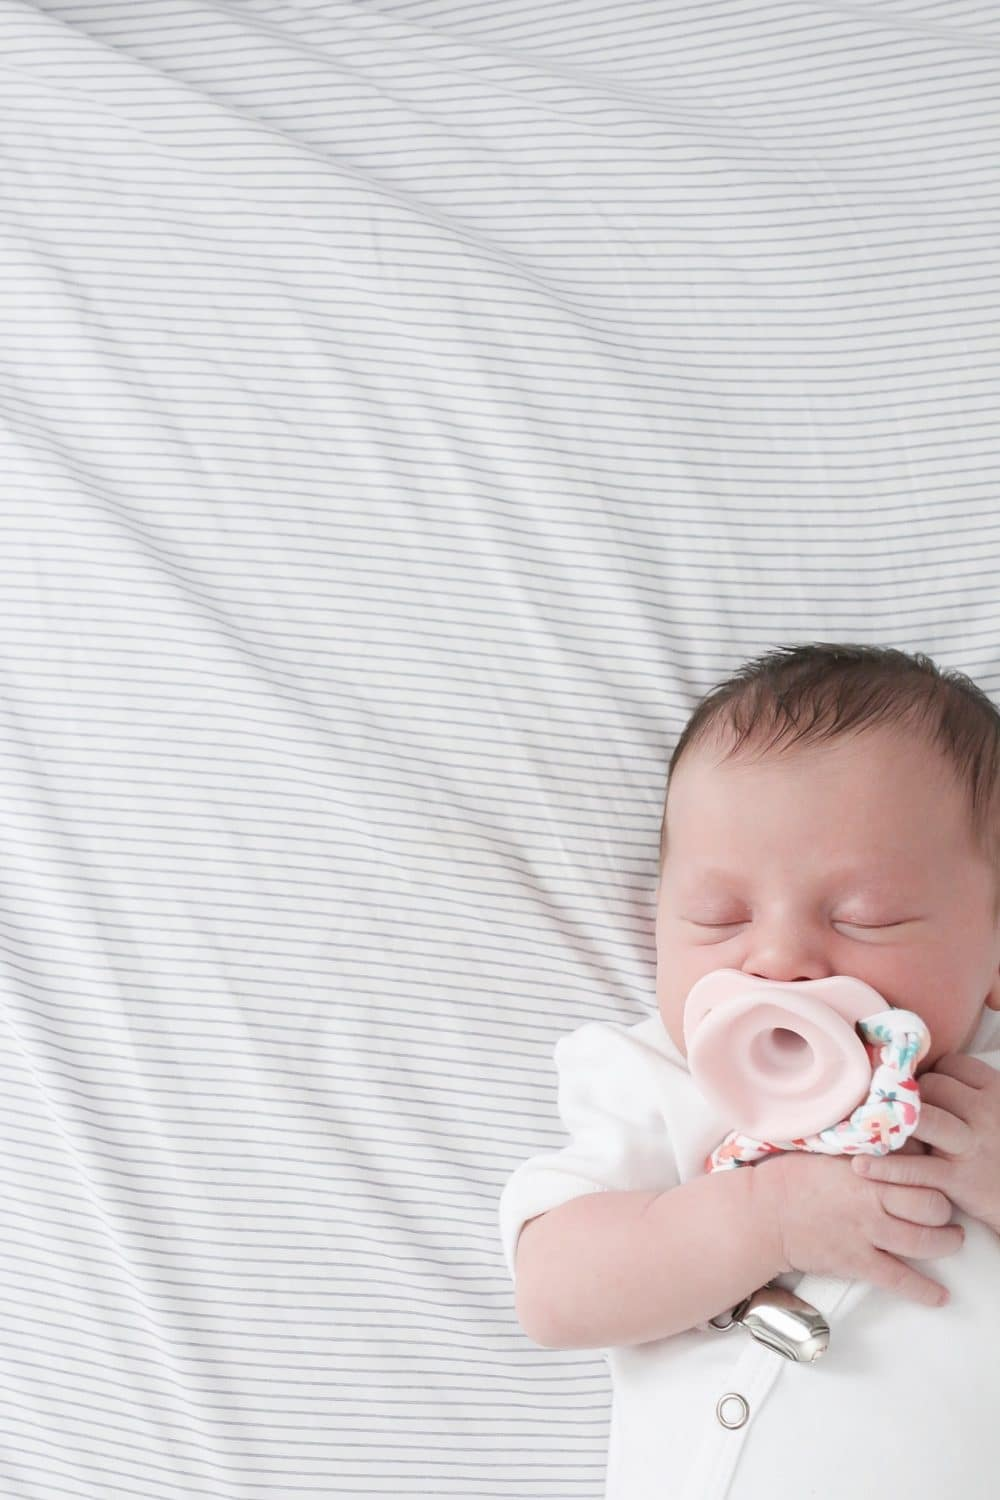 Good luck photographing newborns is the best le sigh